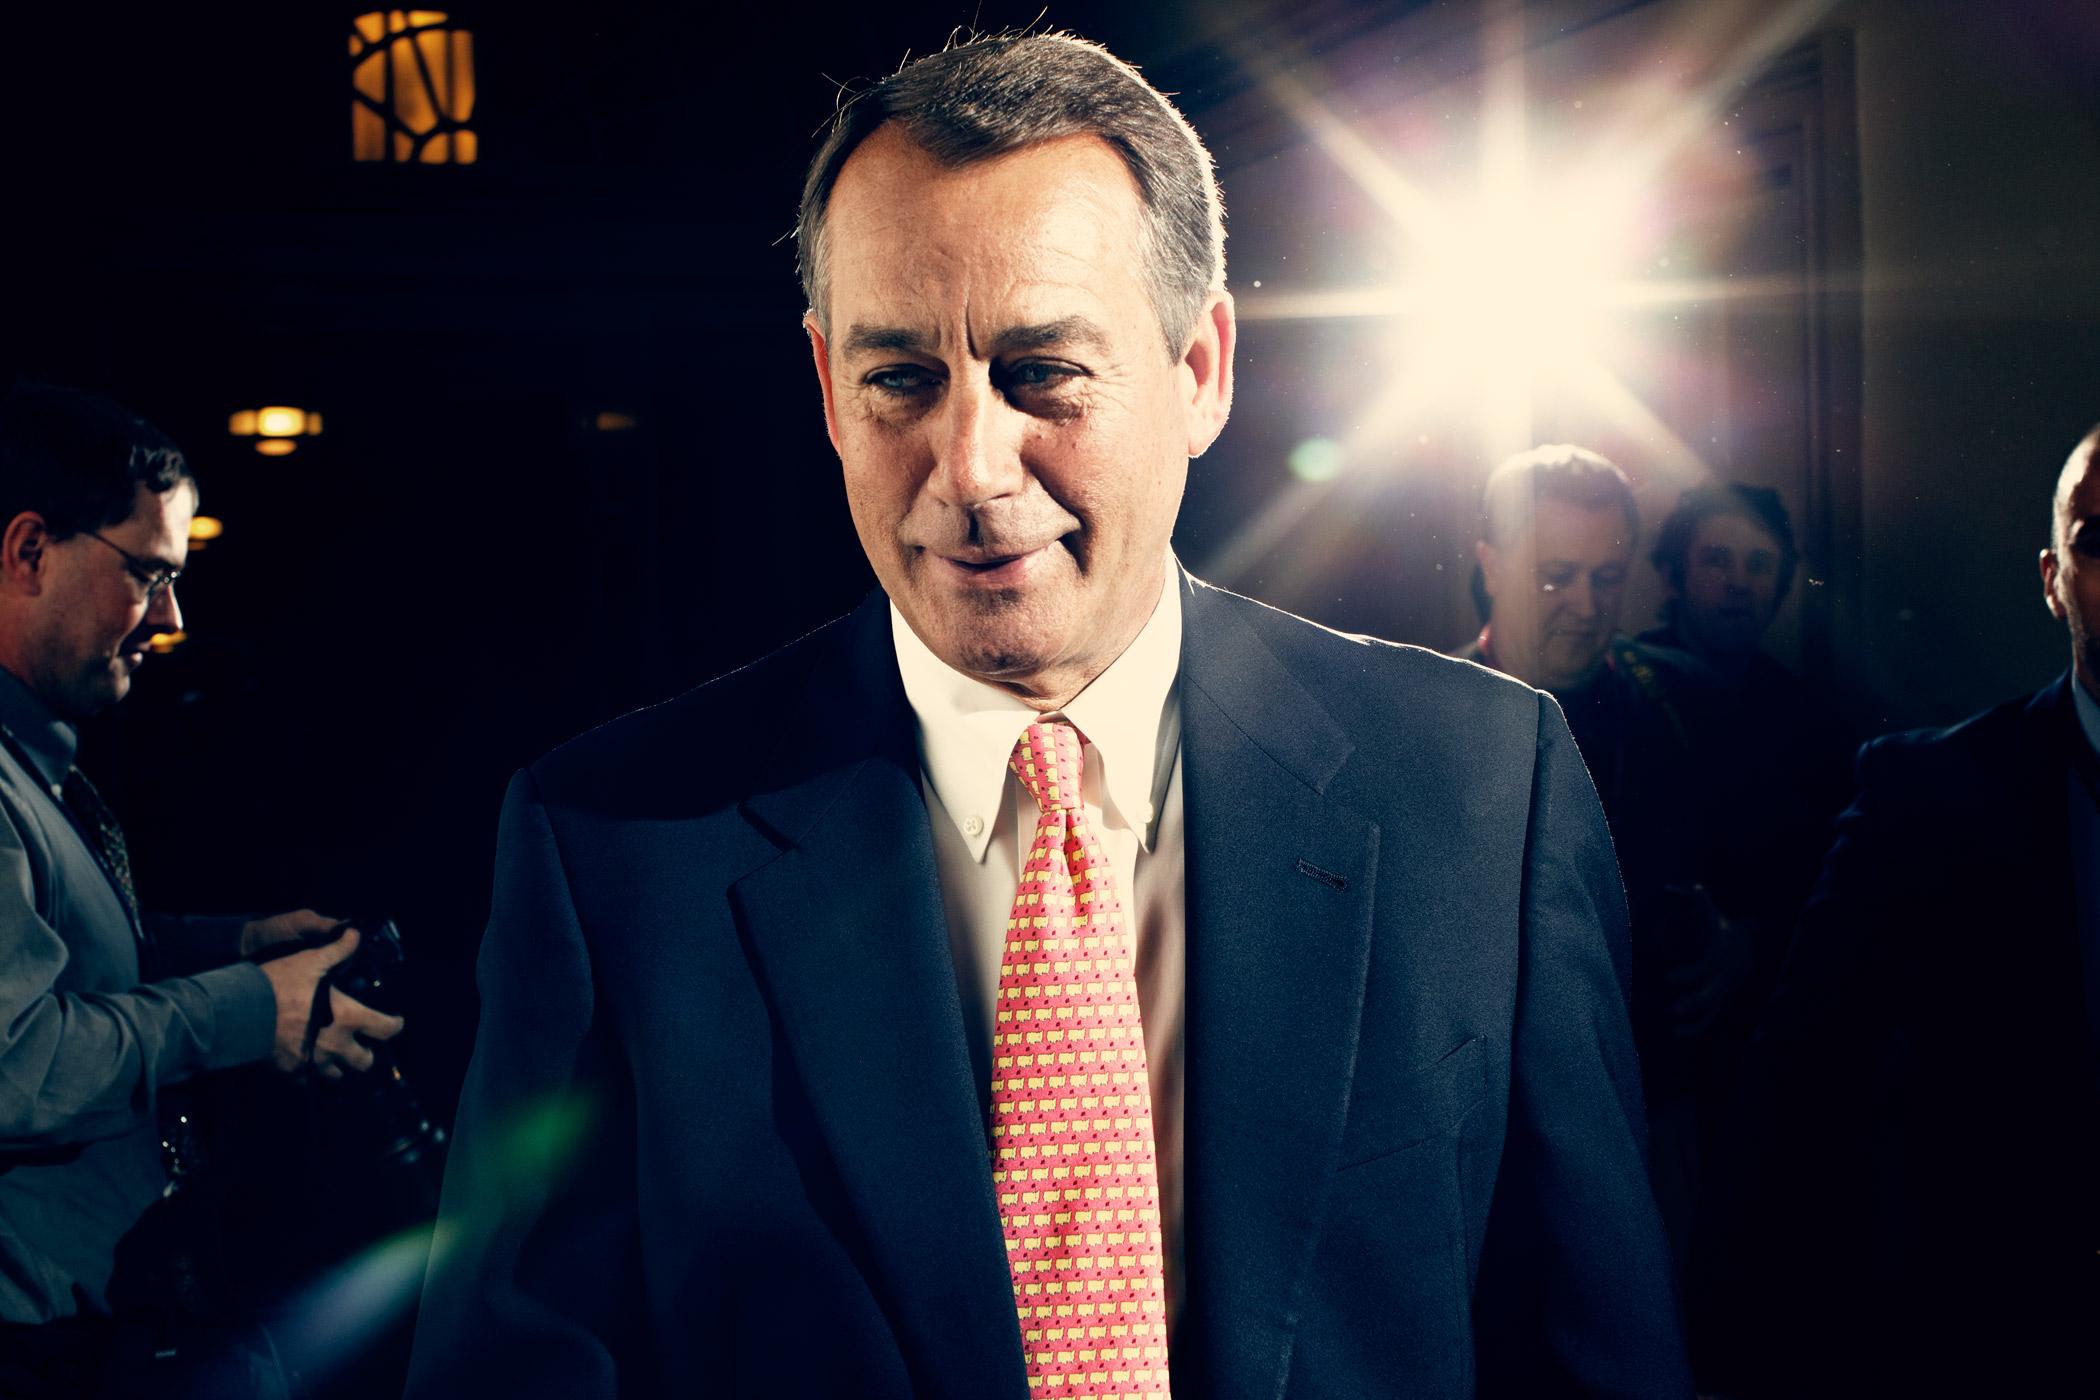 Boehner walks out of a meeting at the U.S. Capitol ahead of a potential government shutdown, in Washington in April 2011.